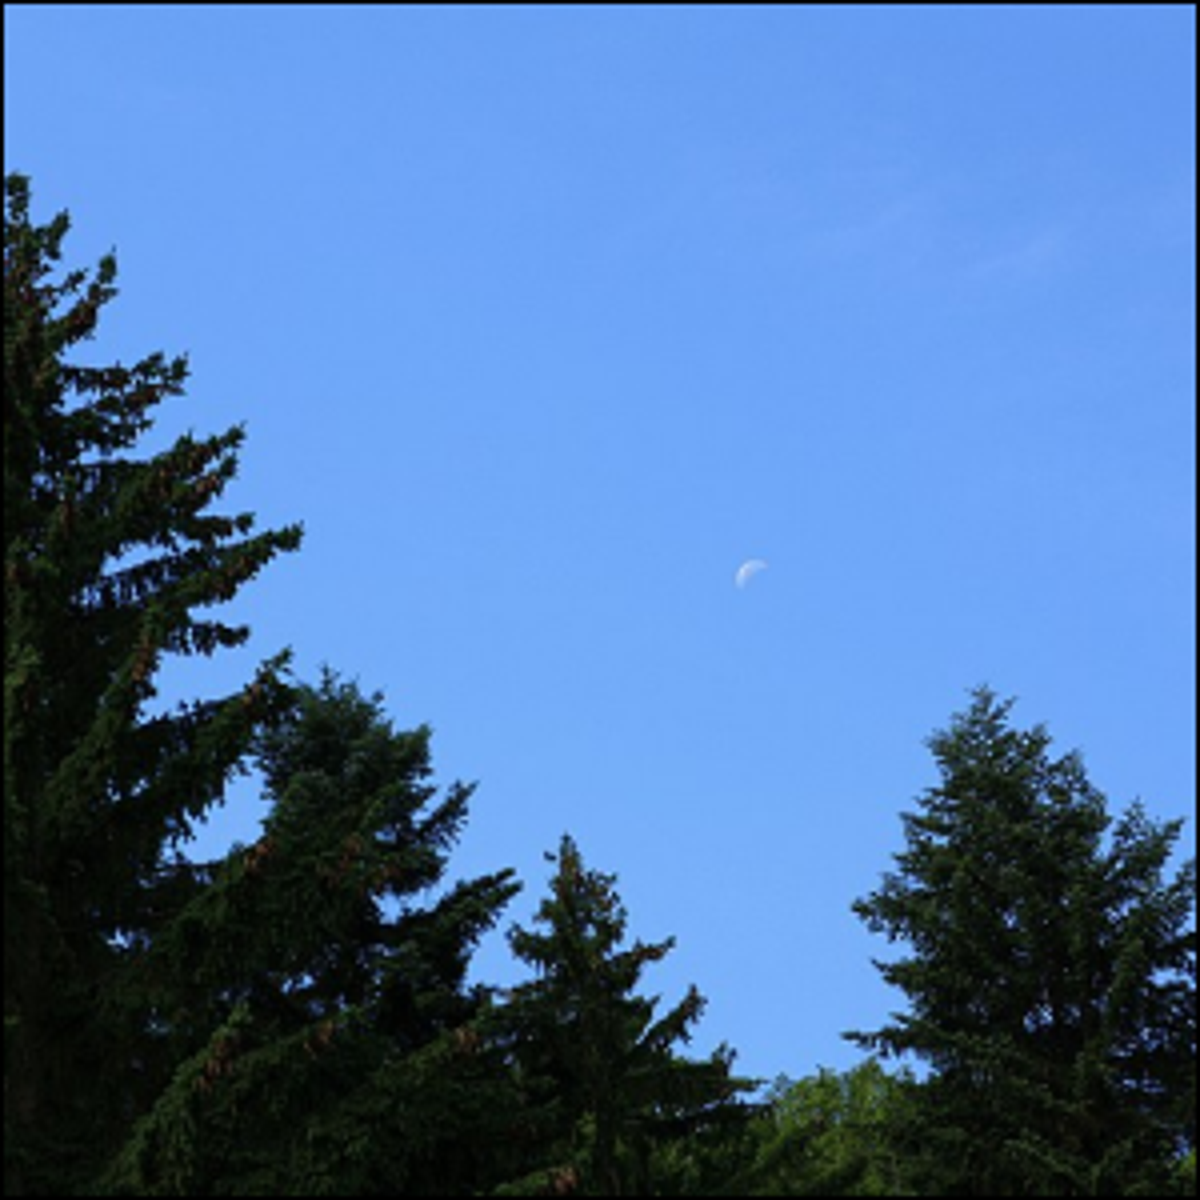 A photo of evergreen trees and a bright blue sky.